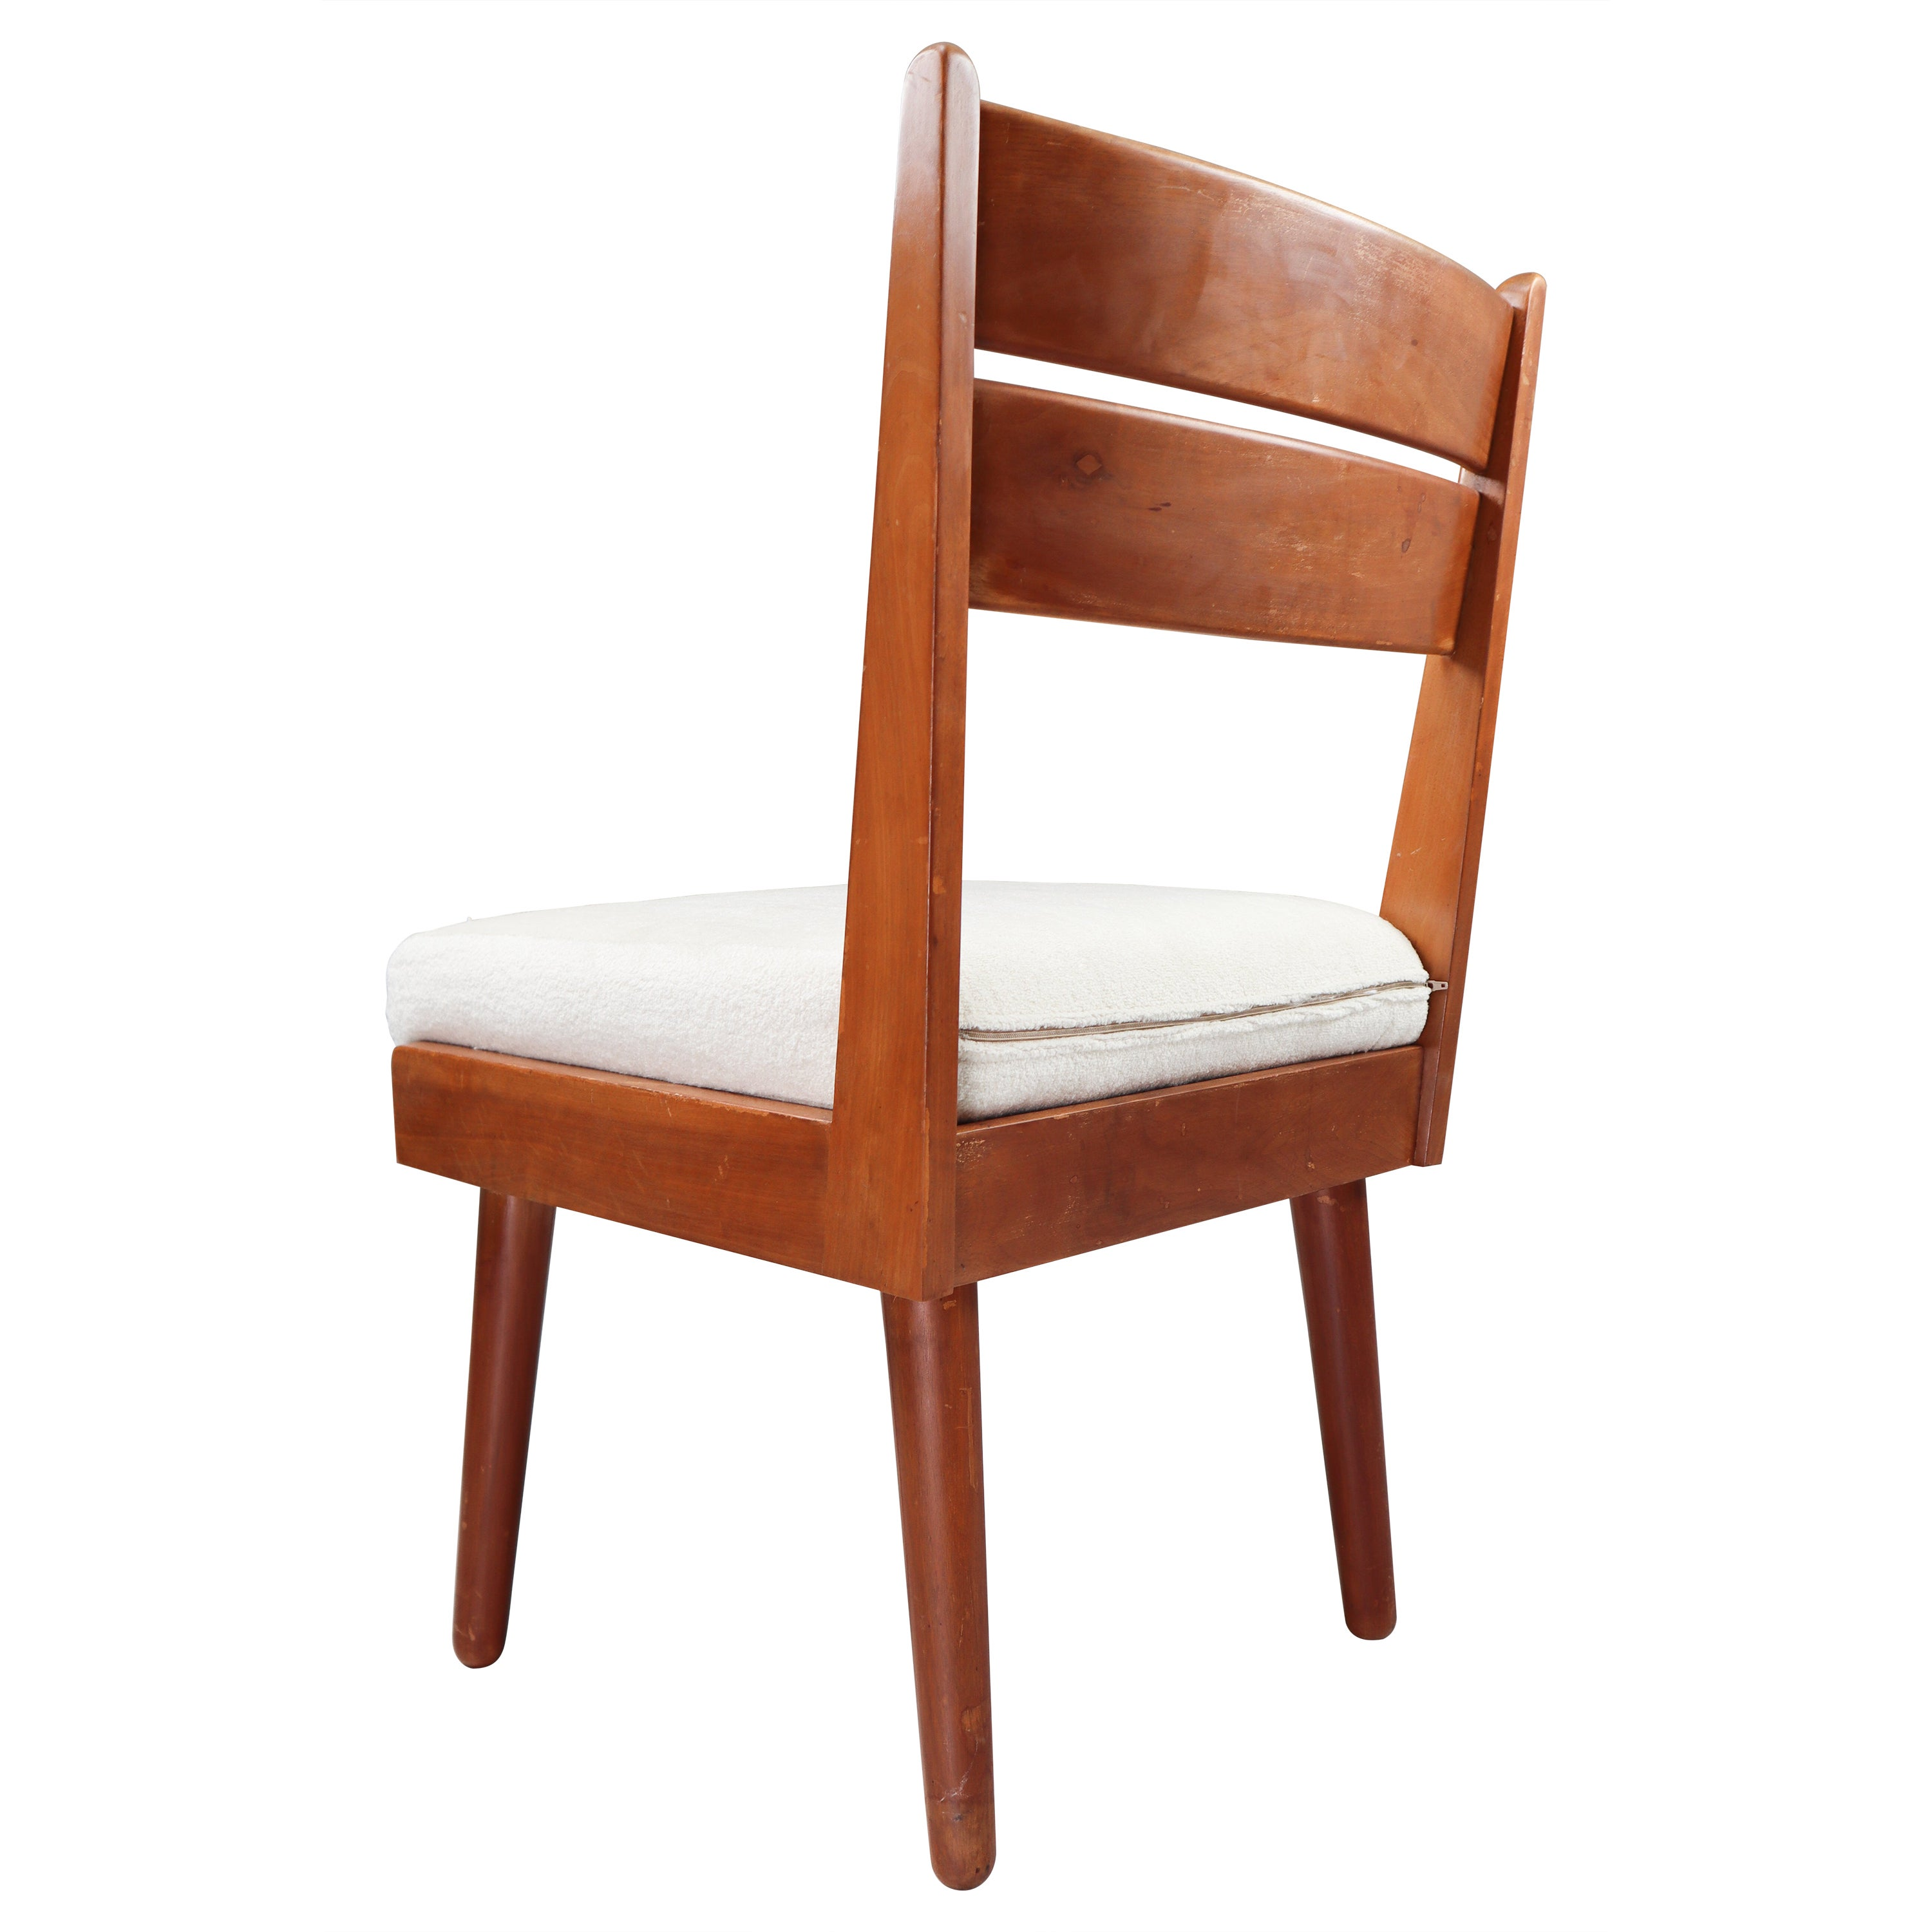 Midcentury French Chair in Walnut and Wool Fabric, 1950s